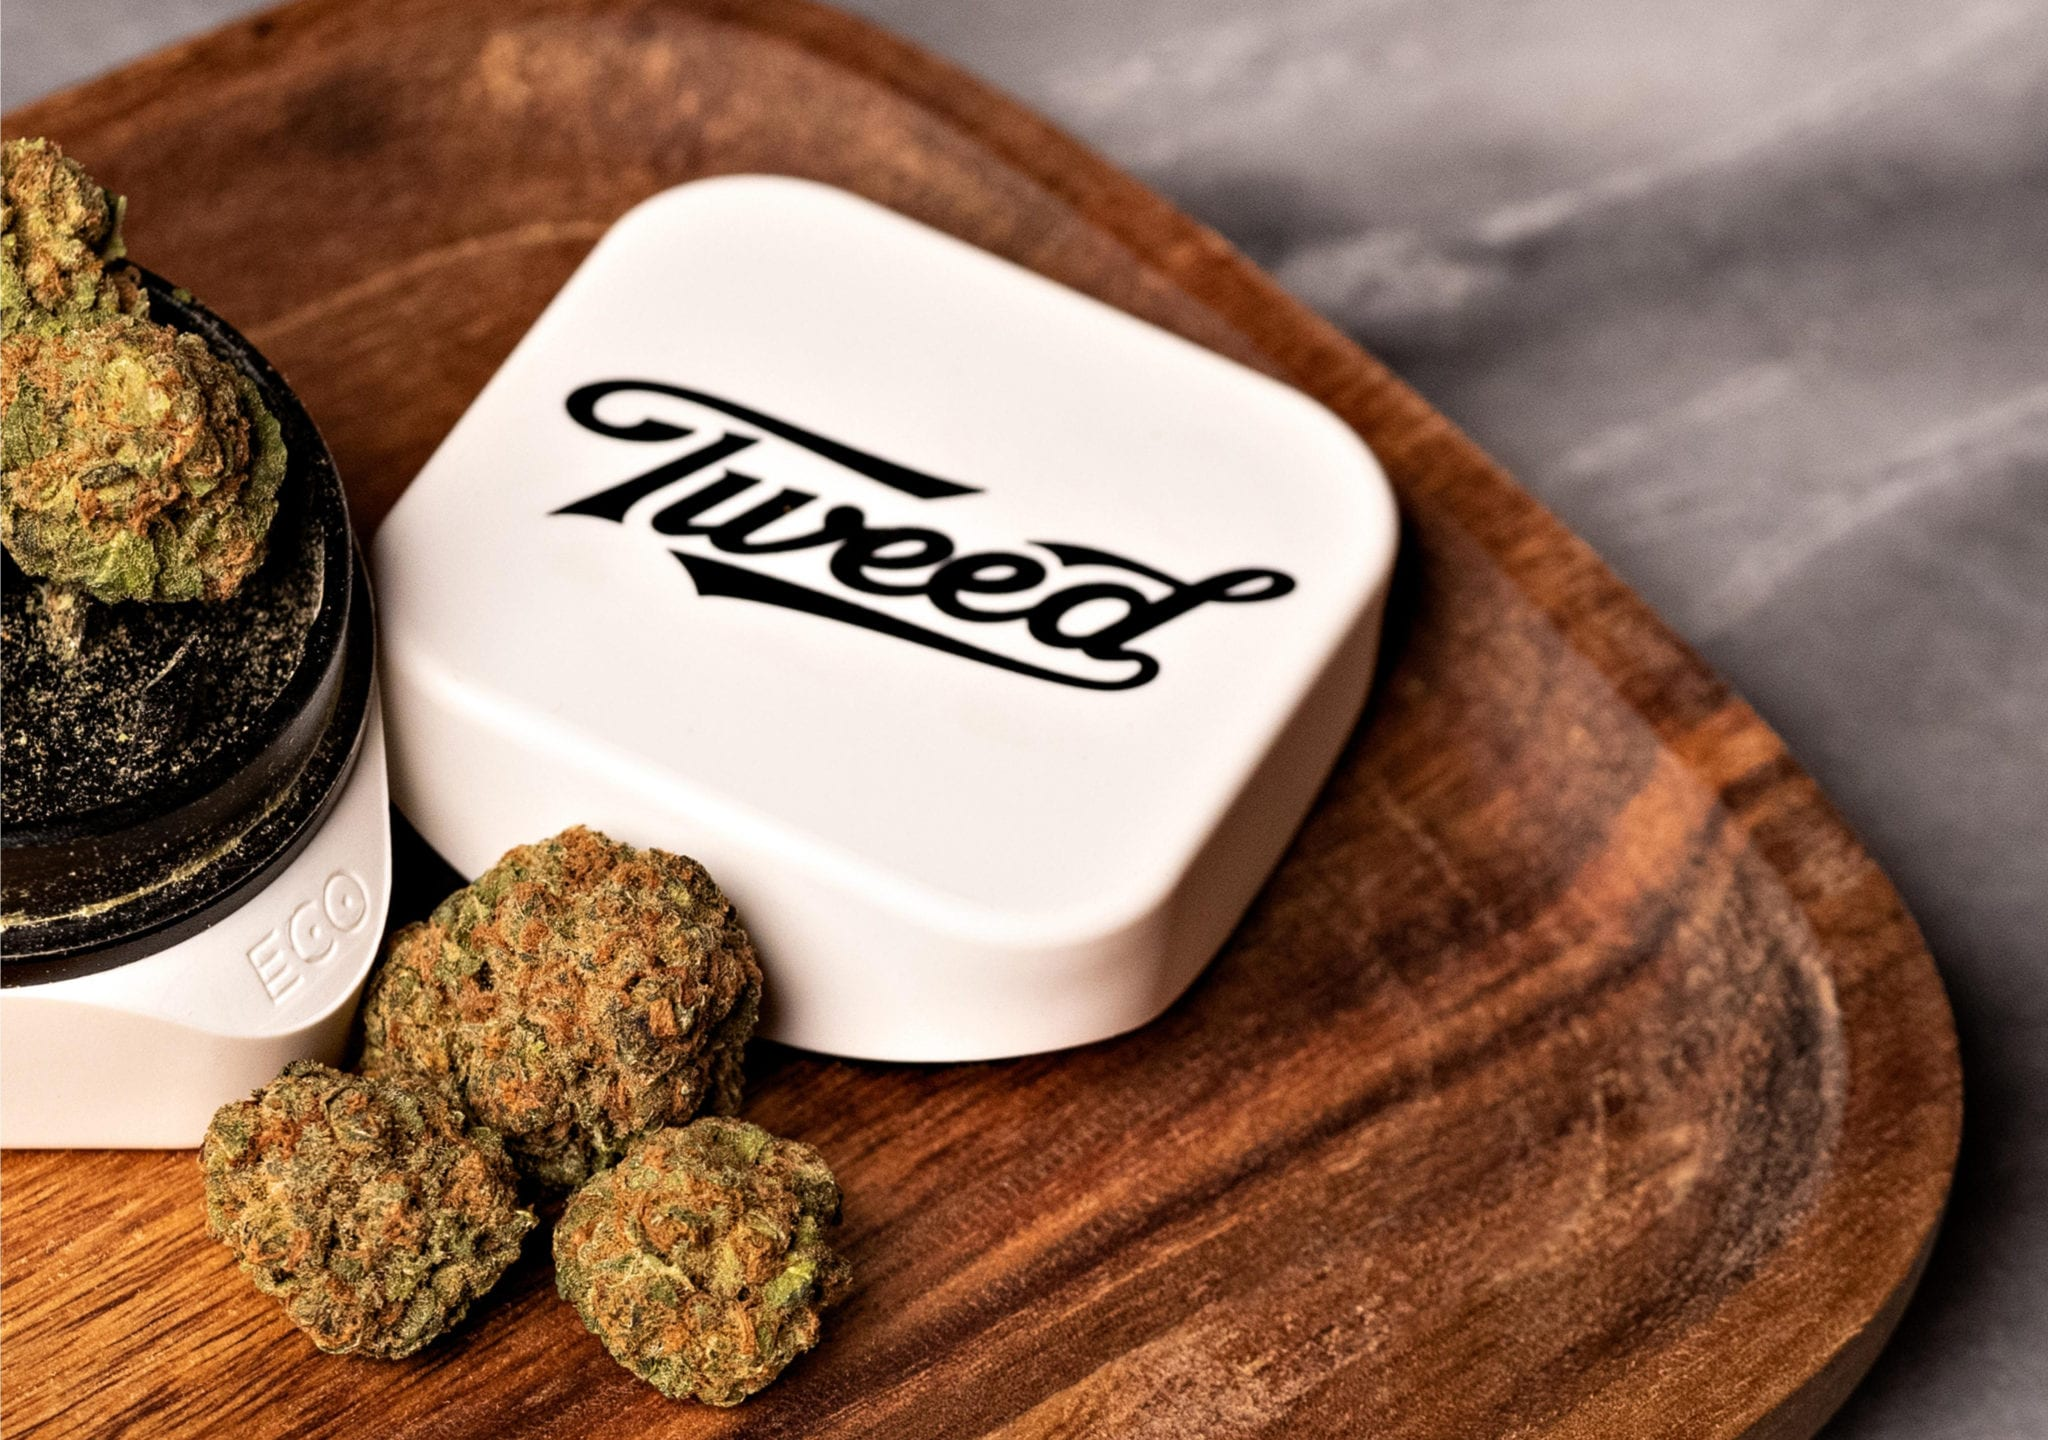 photo of Cannabis brand awareness remains low among Canadian consumers image